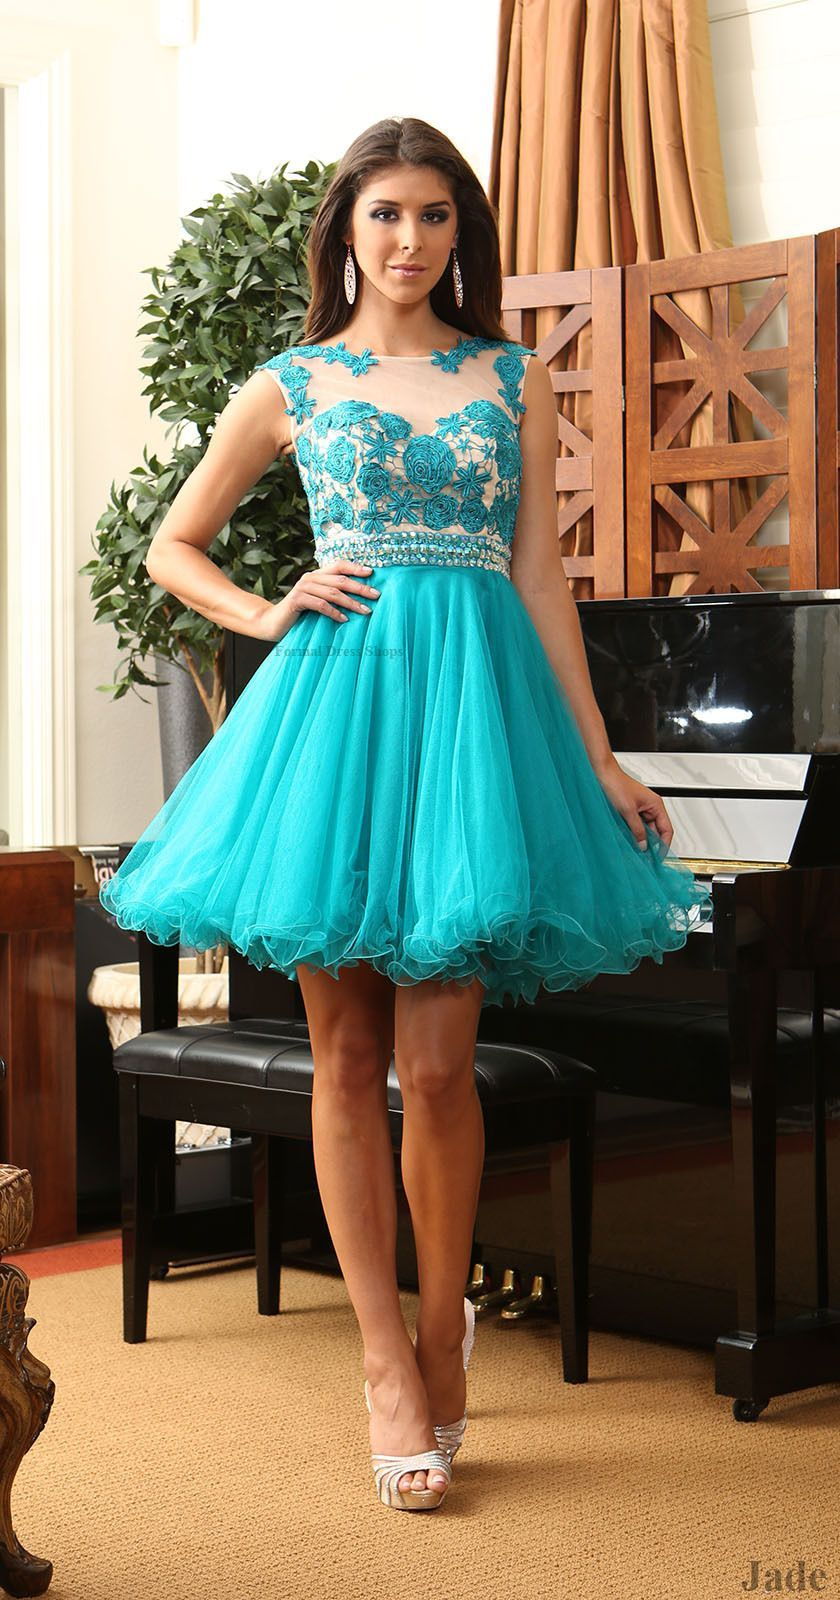 a737b9ad4b Short Prom Dance Dress Cocktail Graduation Cruise Party Homecoming Semi  Formal